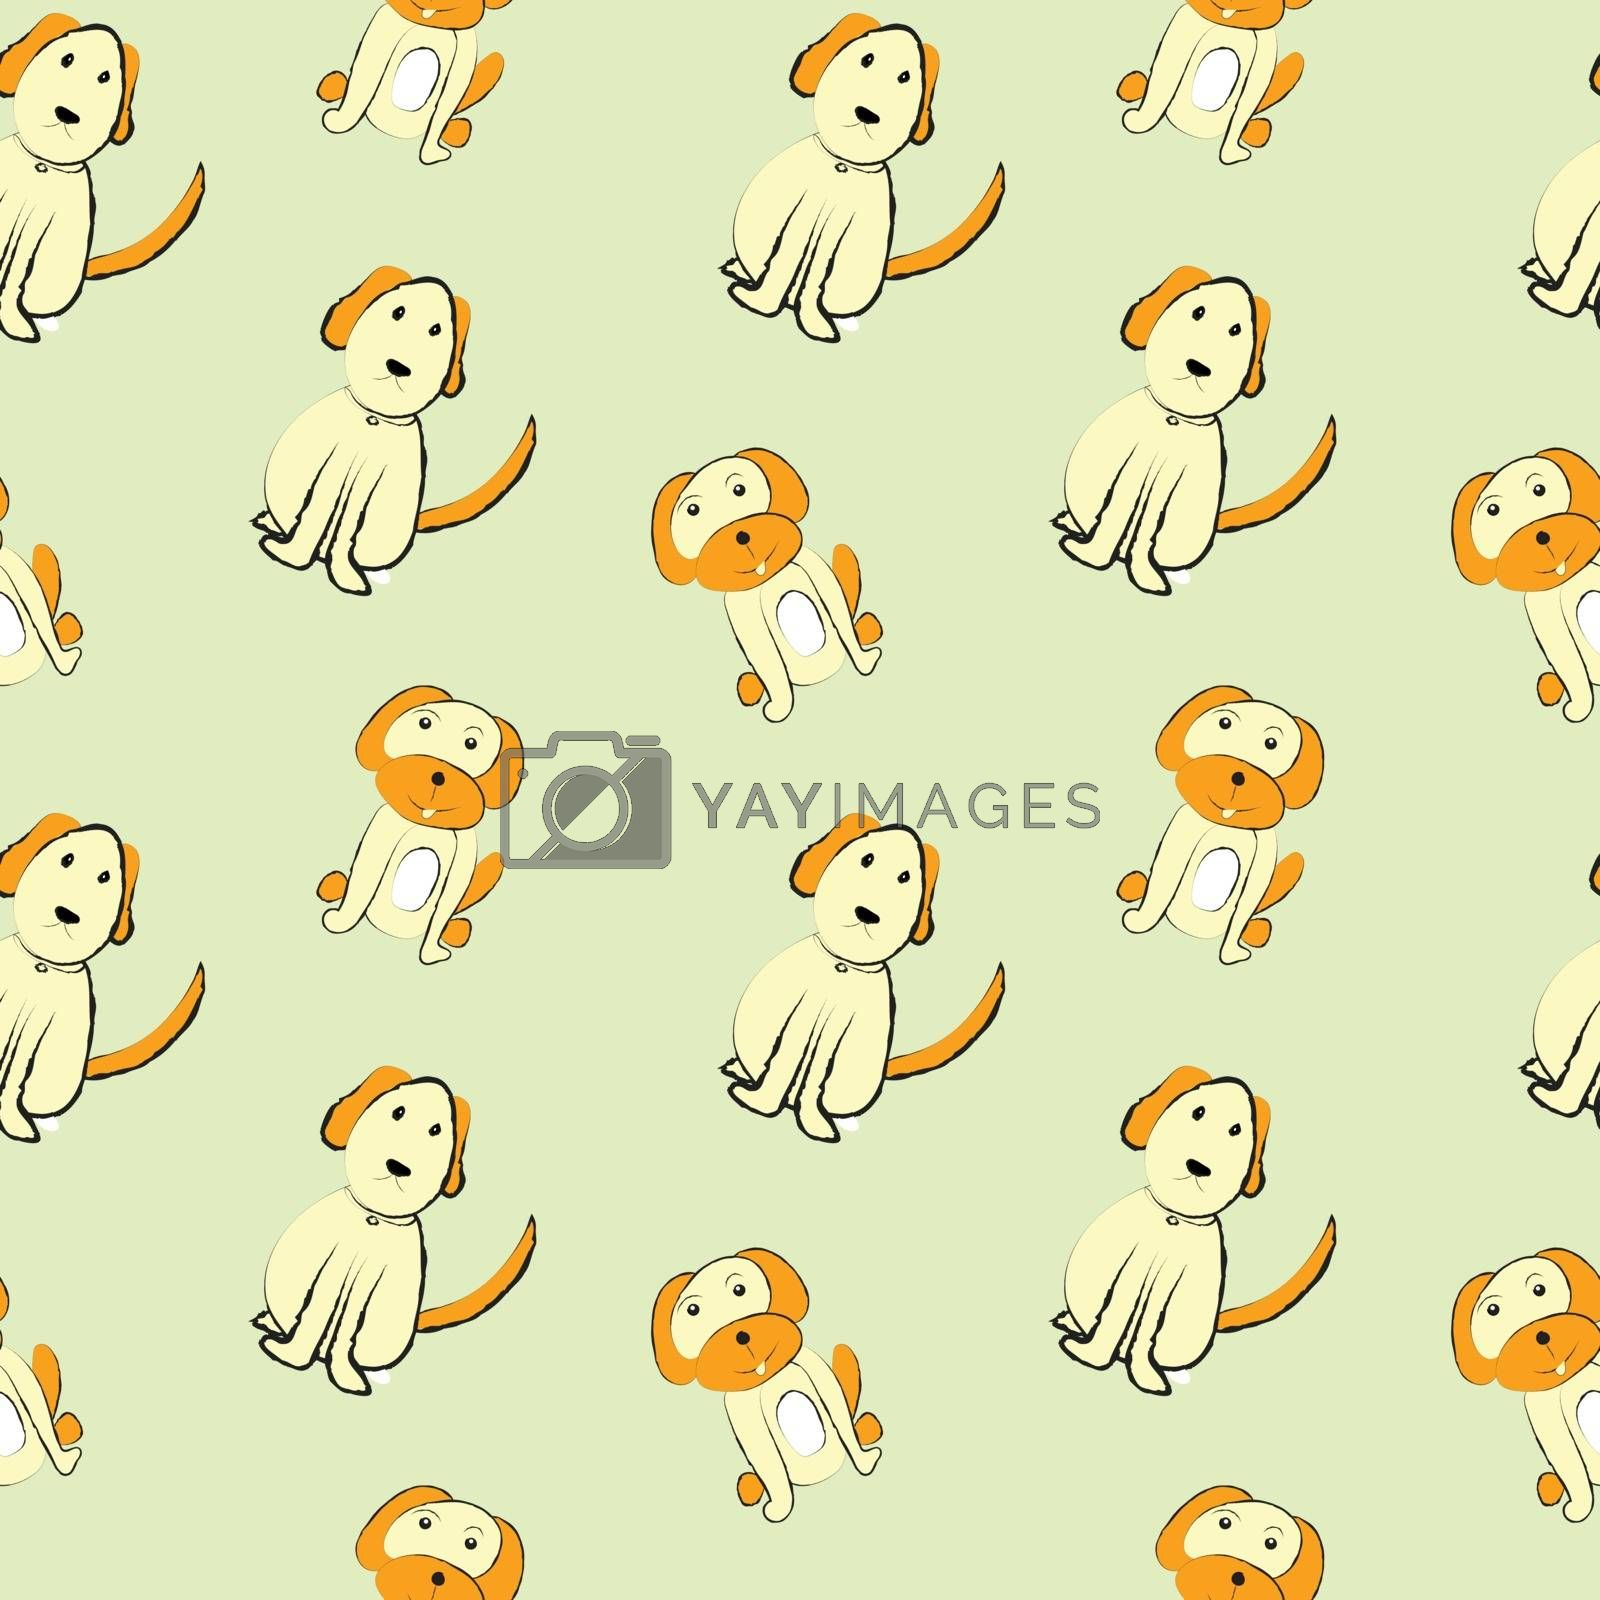 Dogs on cream color  background, seamless pattern image